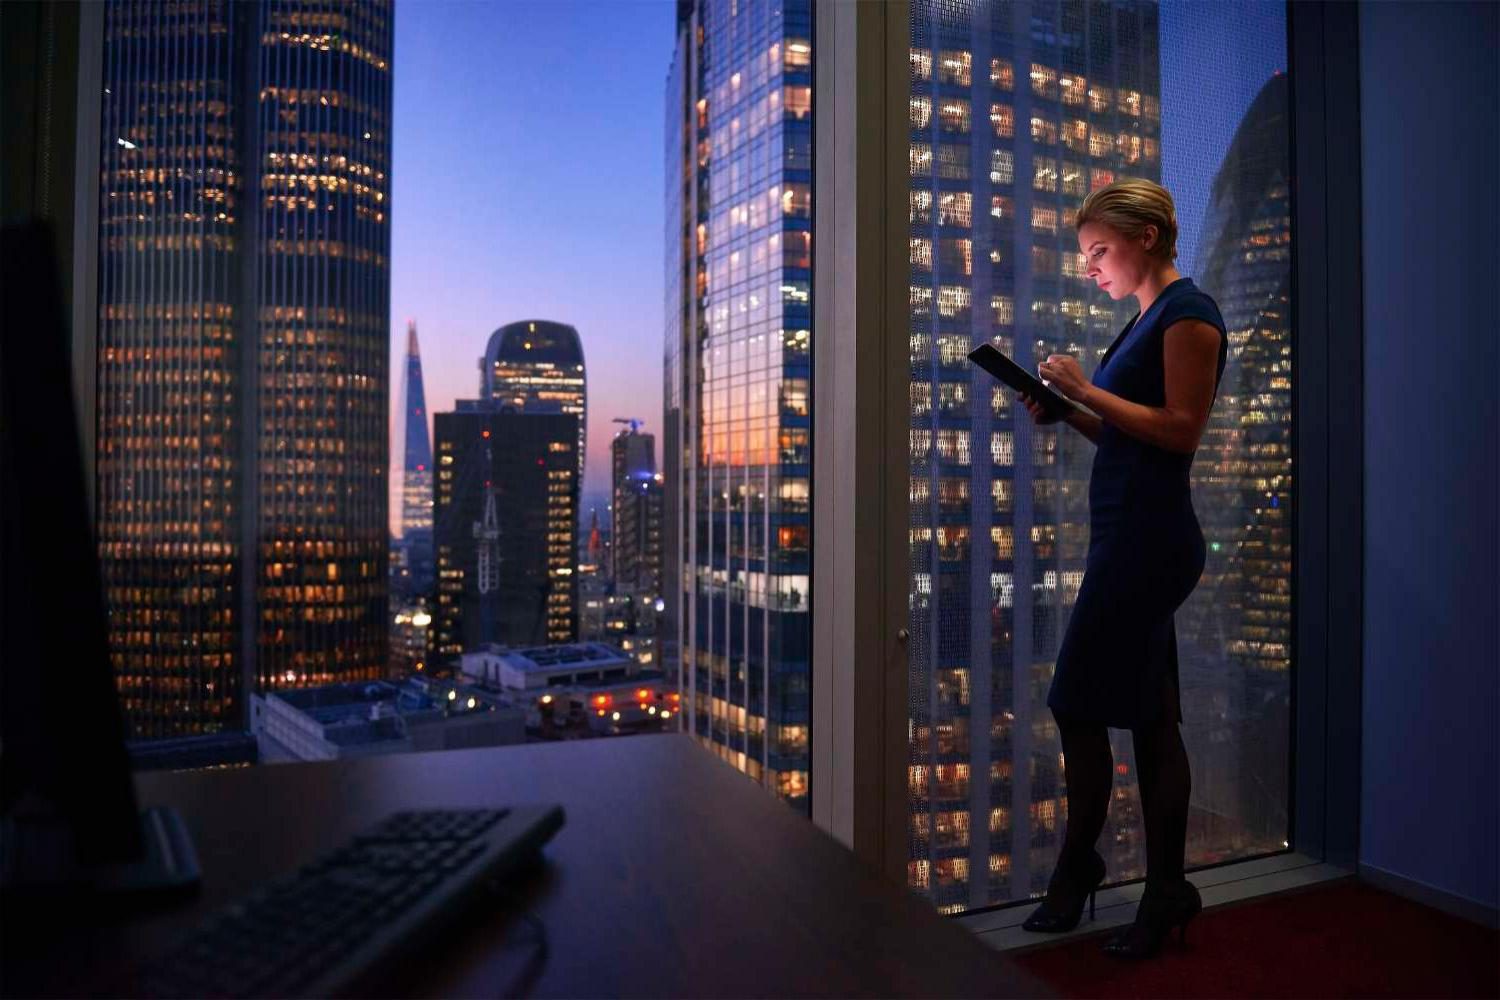 Blond woman on tablet in front of cityscape